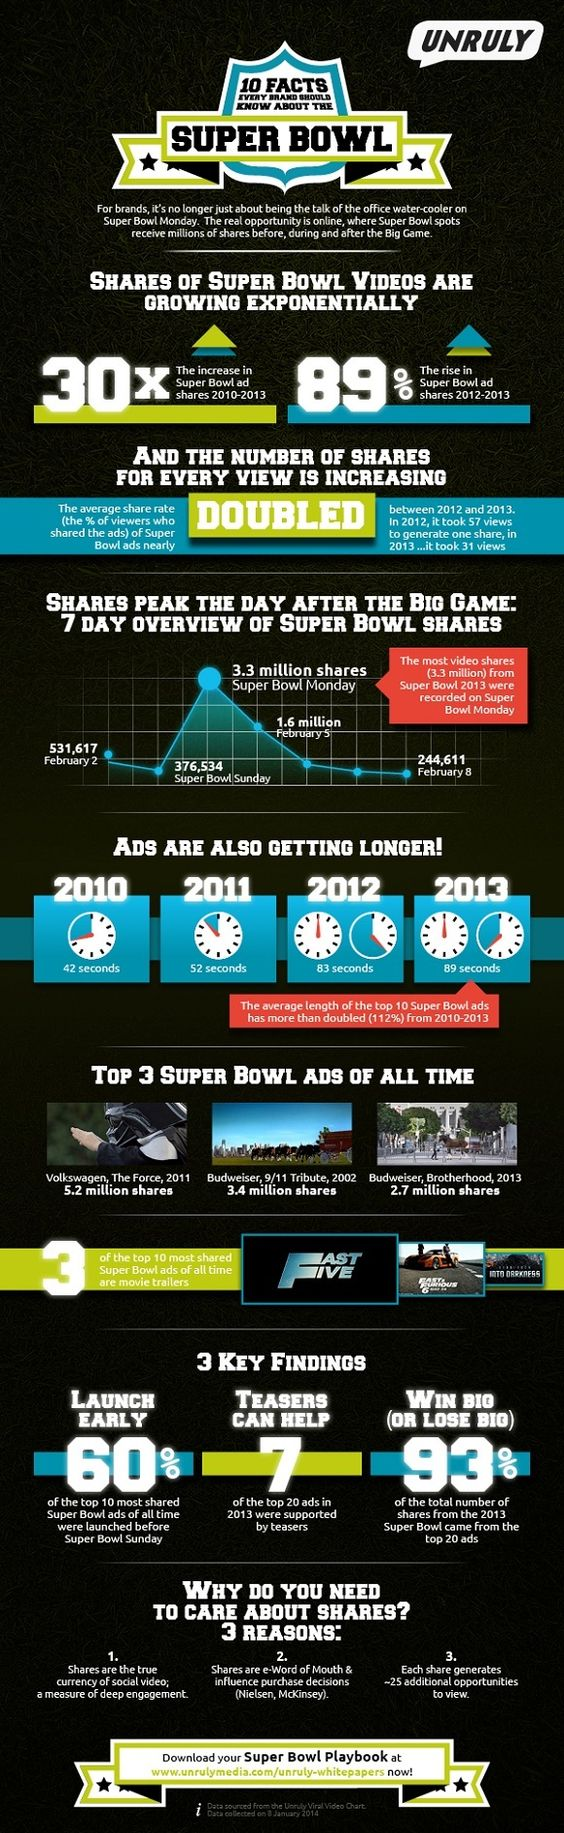 ~10 facts about video shares and #SB commercials